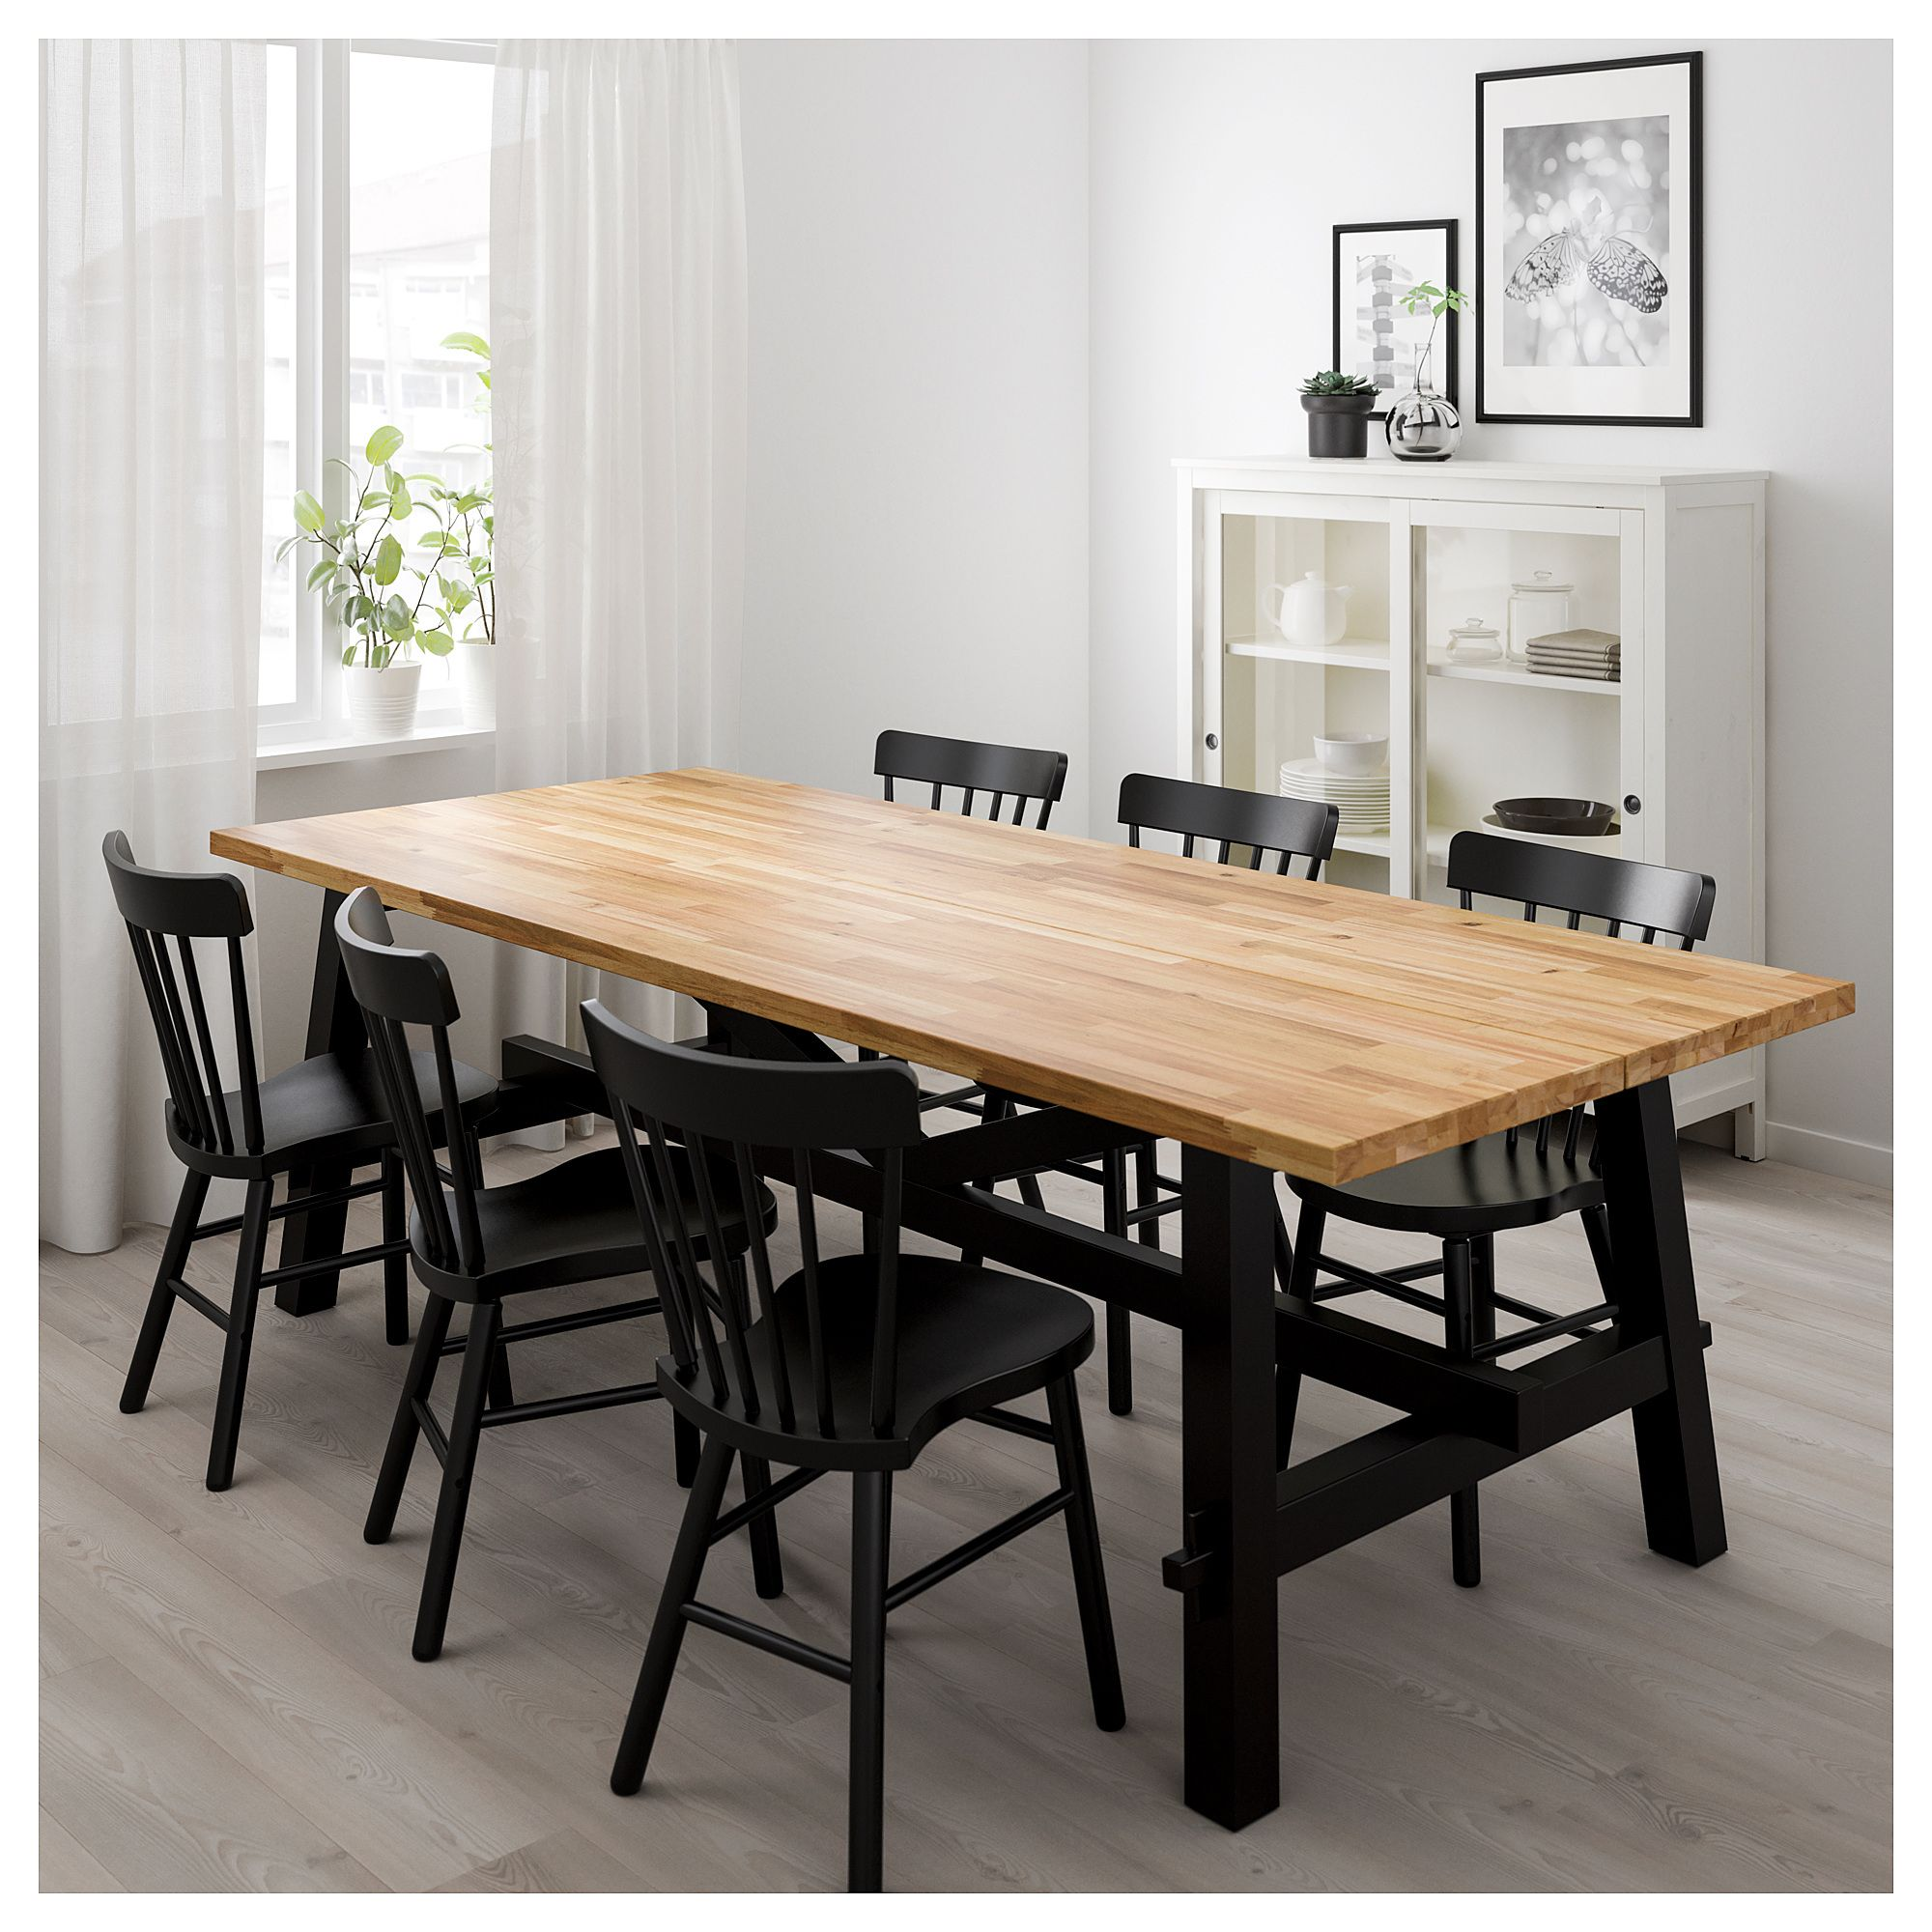 Dining Room Inexpensive Dining Room Table With Bench And: IKEA - SKOGSTA Dining Table Acacia